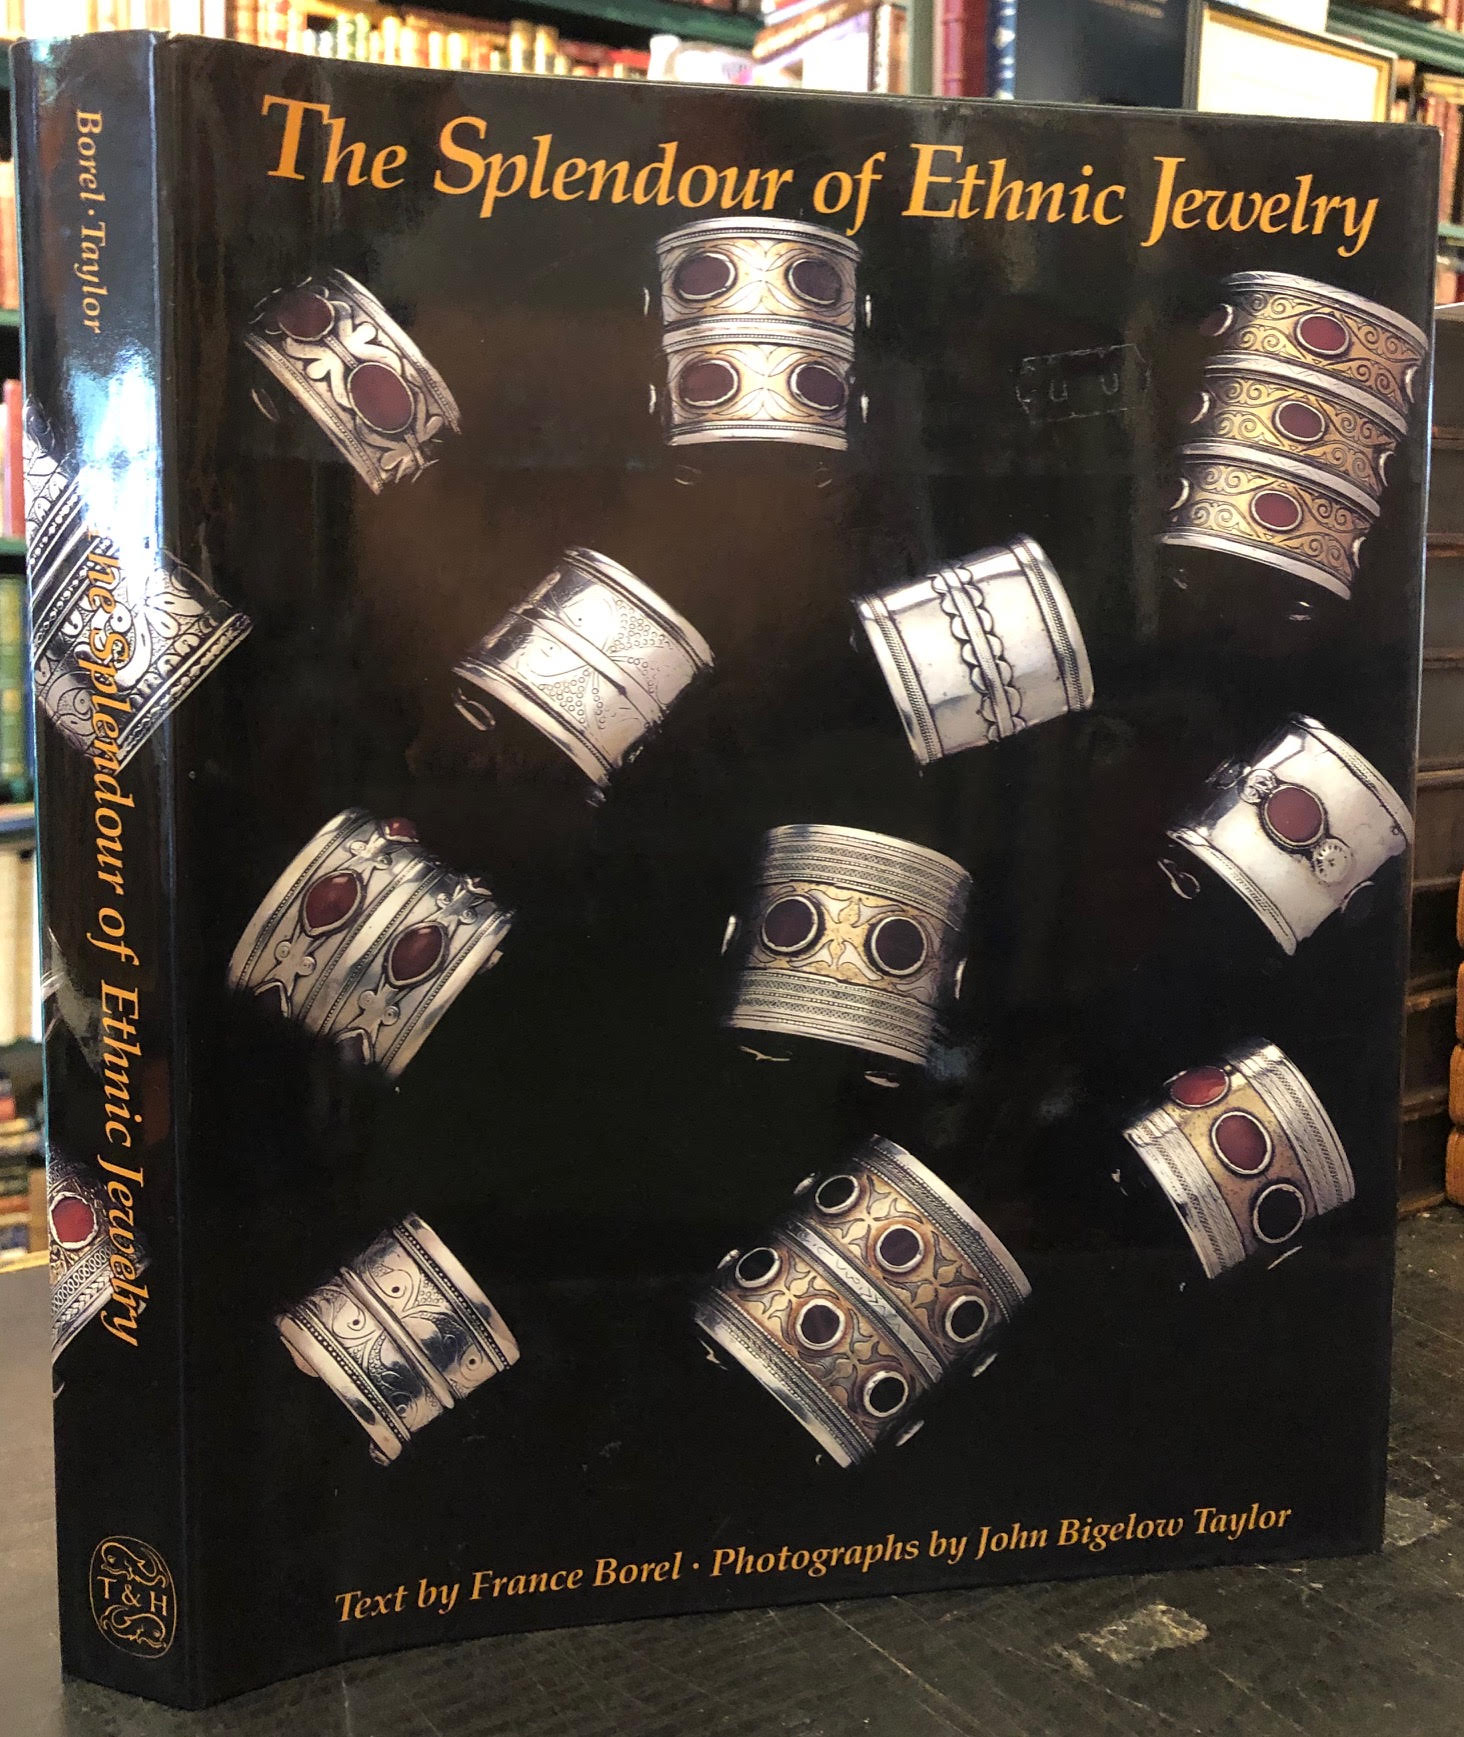 Image for The Splendour of Ethnic Jewelry : From the Colette and Jean-Pierre Ghysels Collection